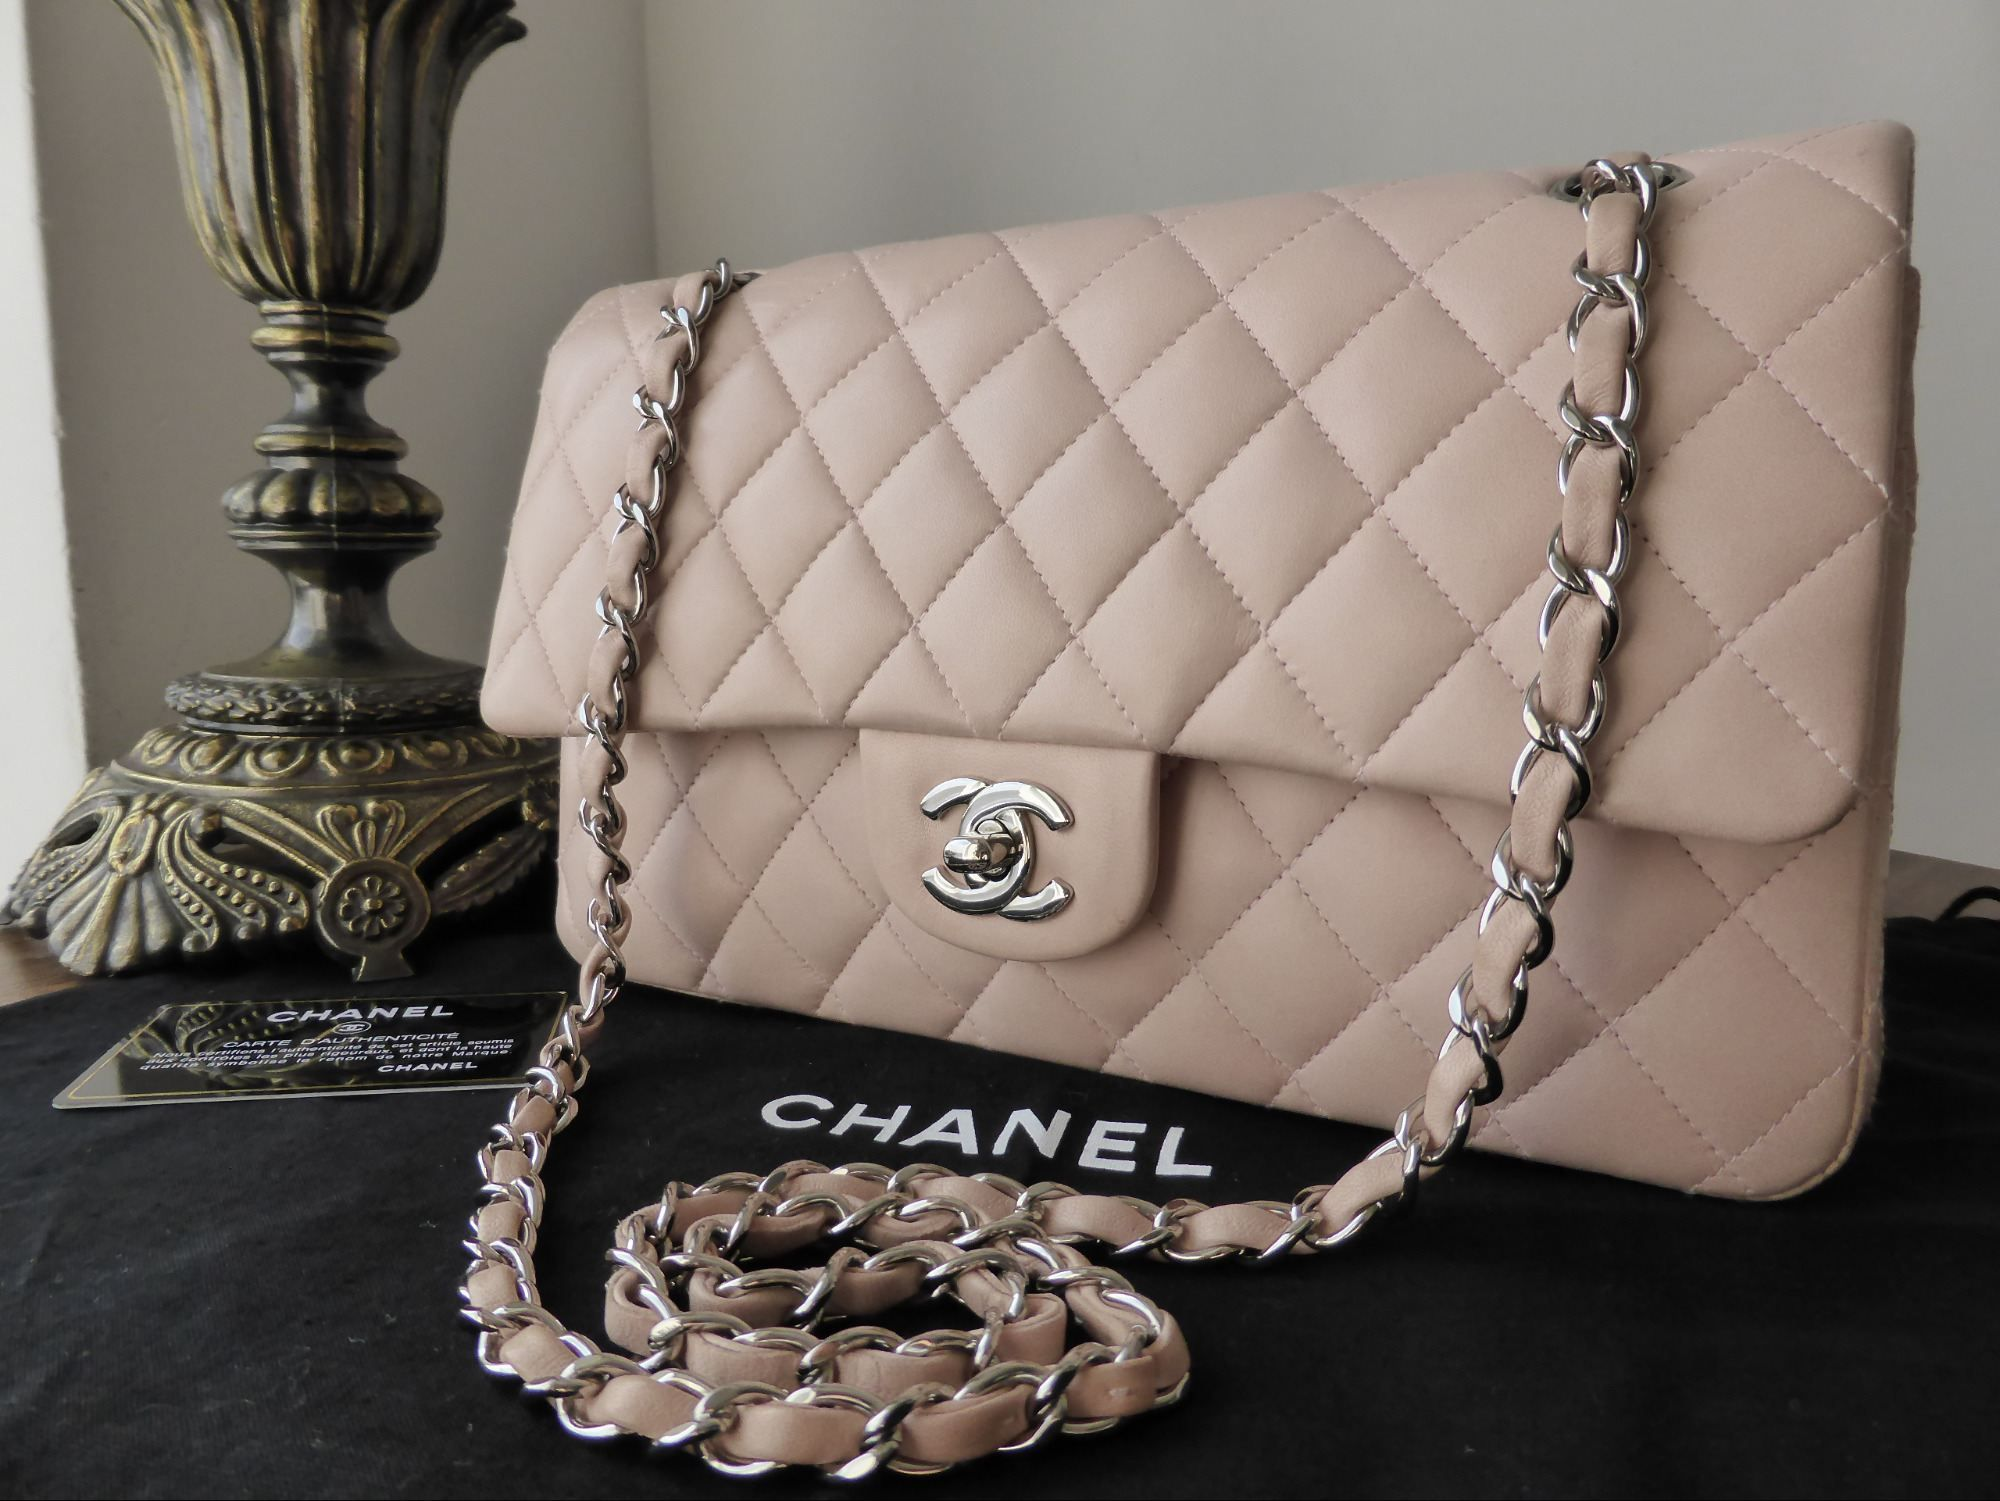 12ec765a3b Chanel Timeless Classic 2.55 Medium Flap Bag in Nude Pink Lambskin with  Silver Hardware >